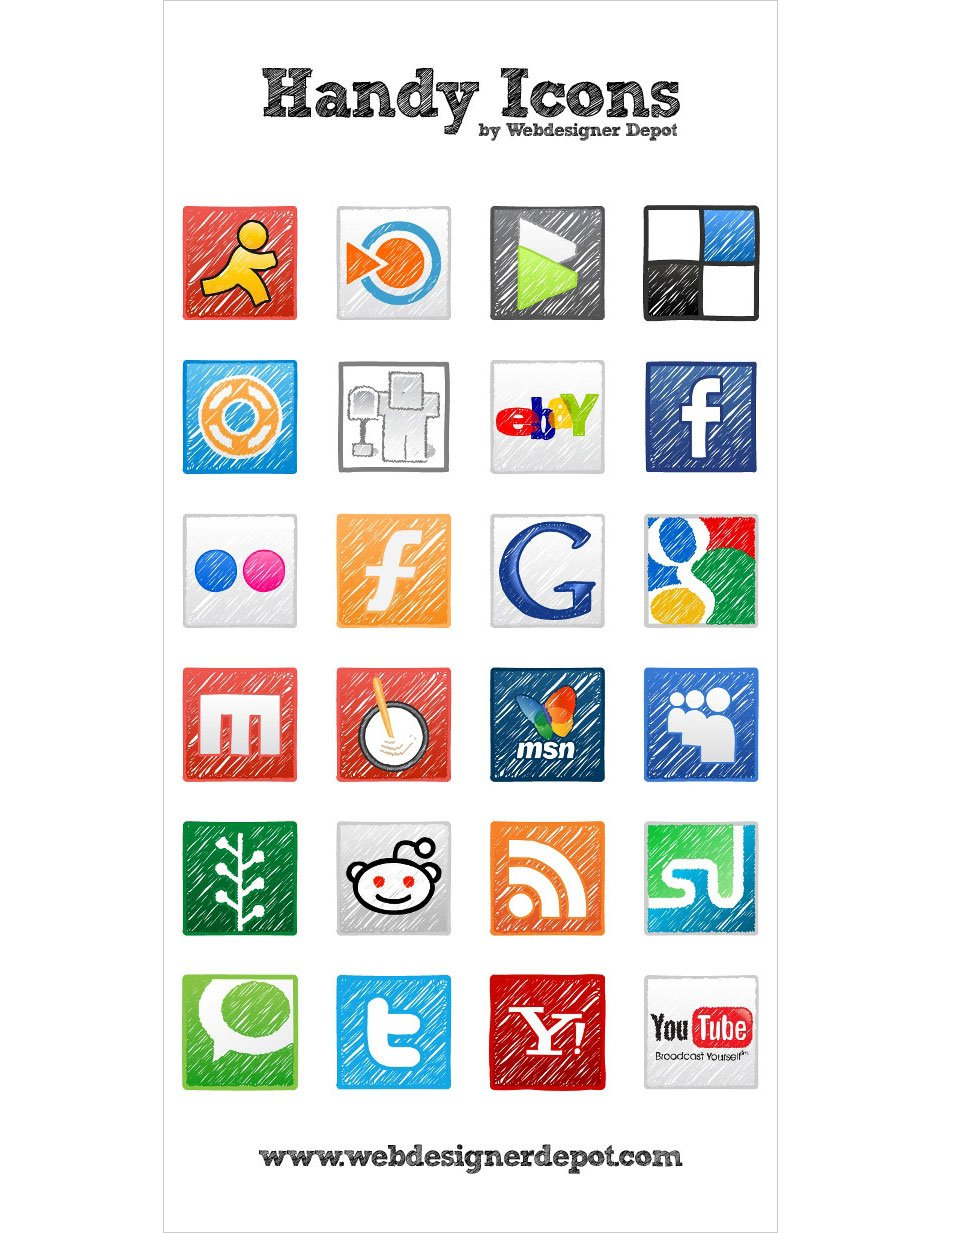 24 free and exclusive vector Handy icons